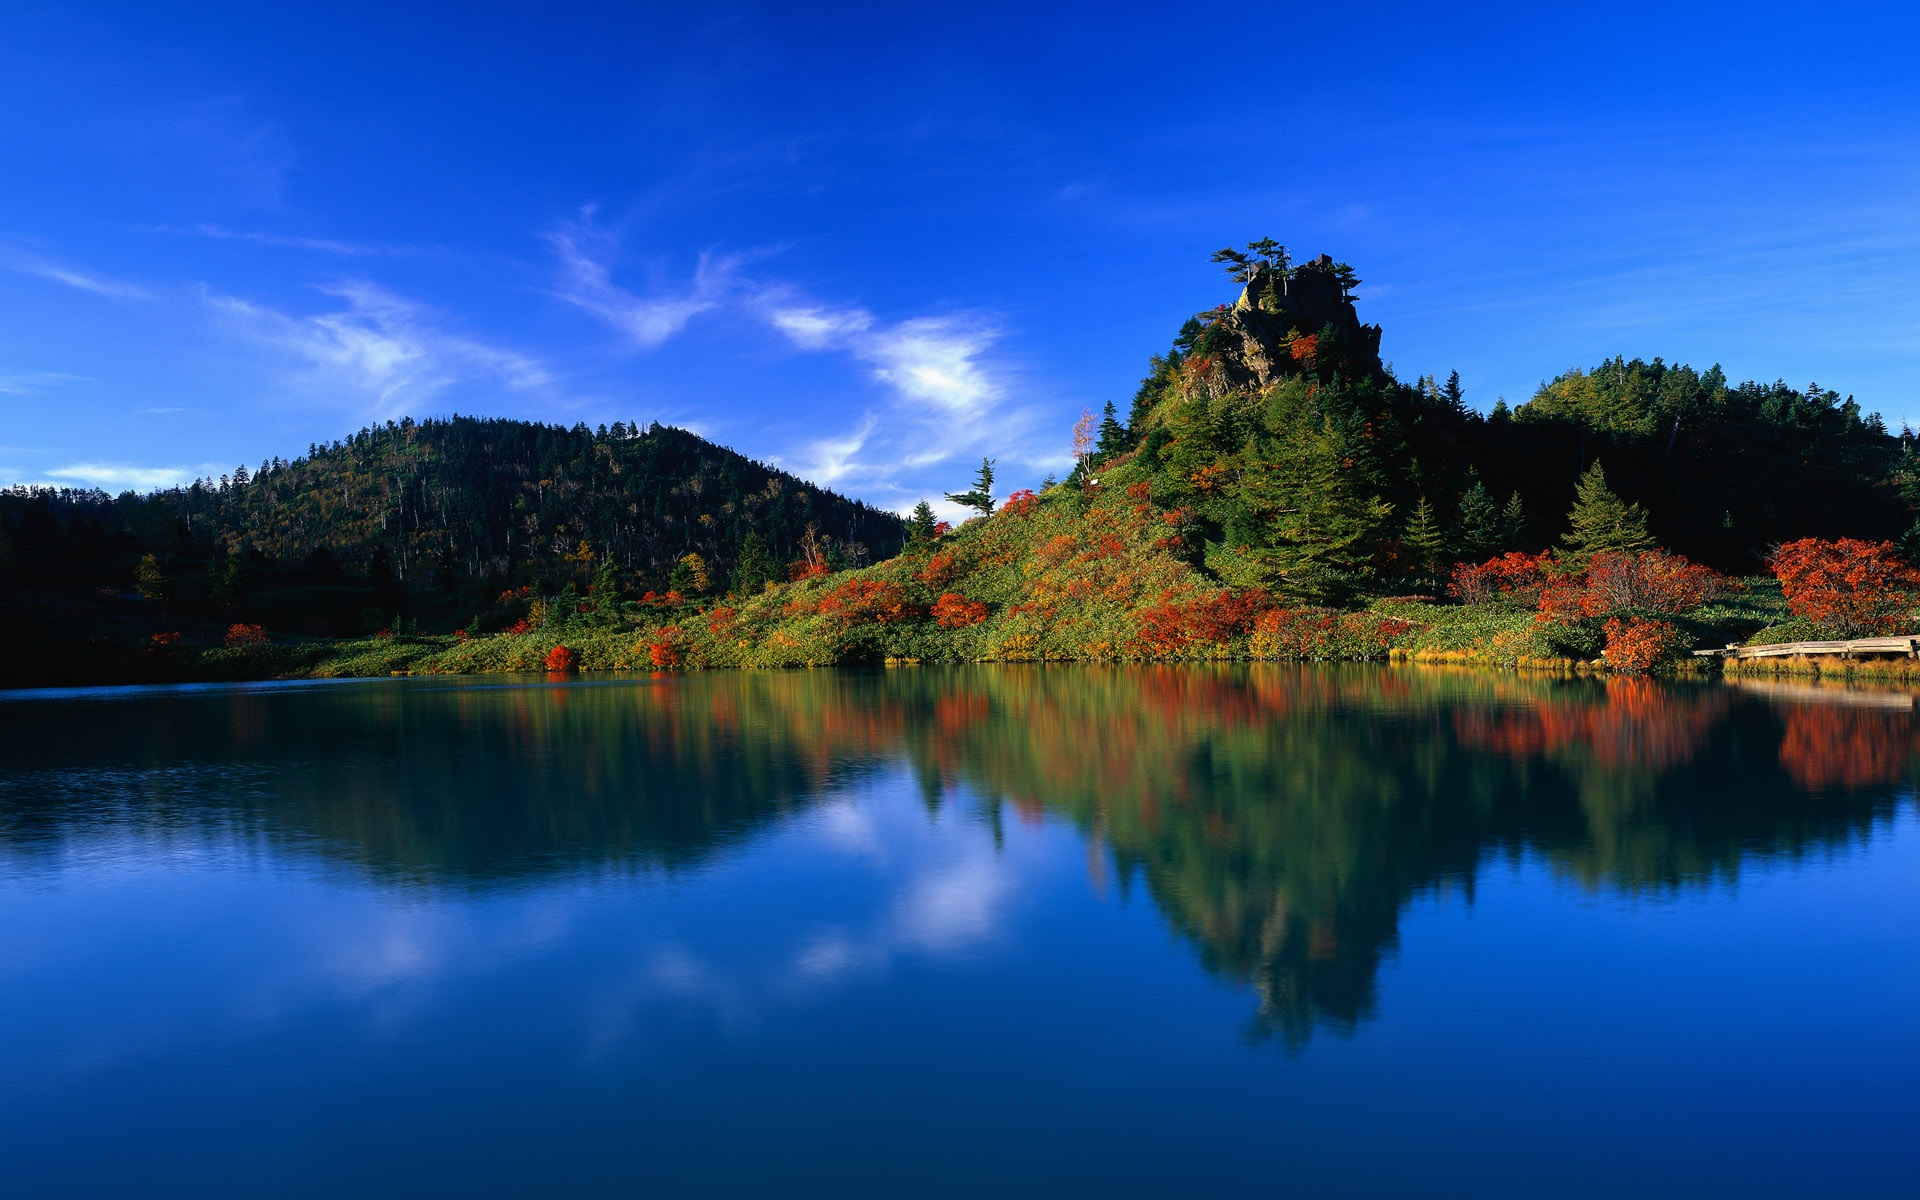 Download free HD Blue Sky Blue Water Green Hill Wallpaper, image